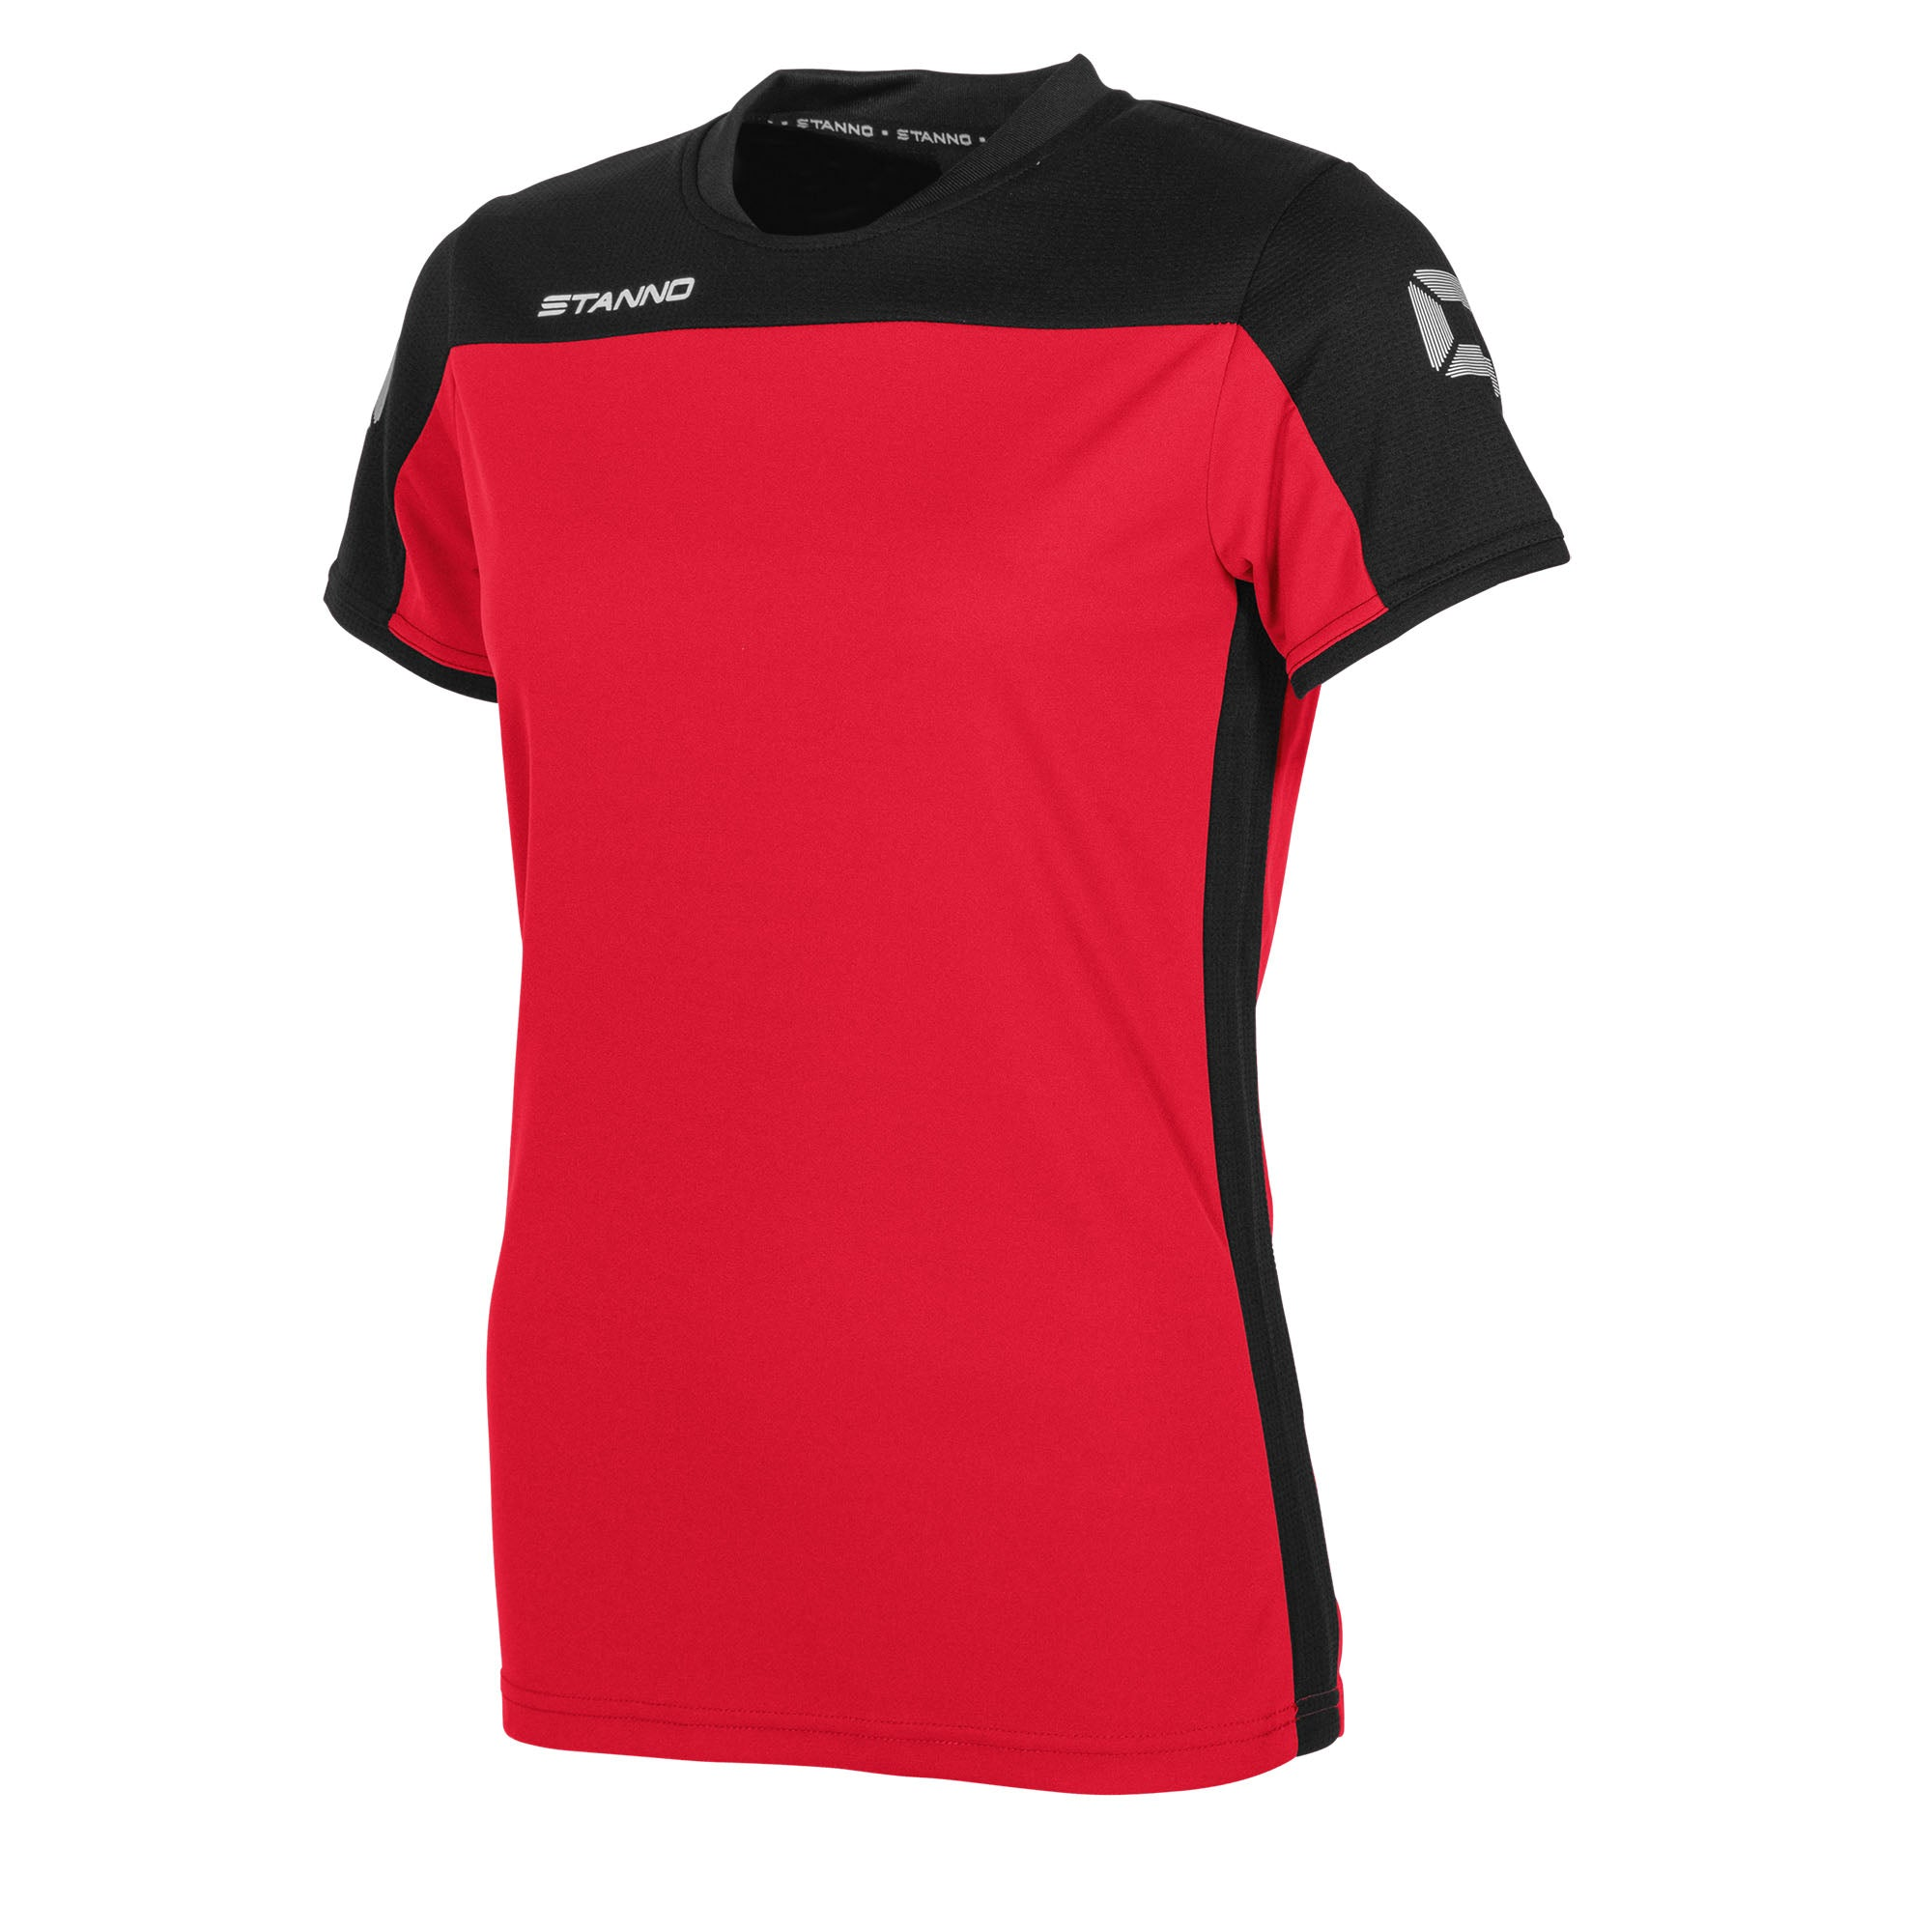 Stanno Pride ladies t-shirt in red, with mesh contrast black shoulder and side panel